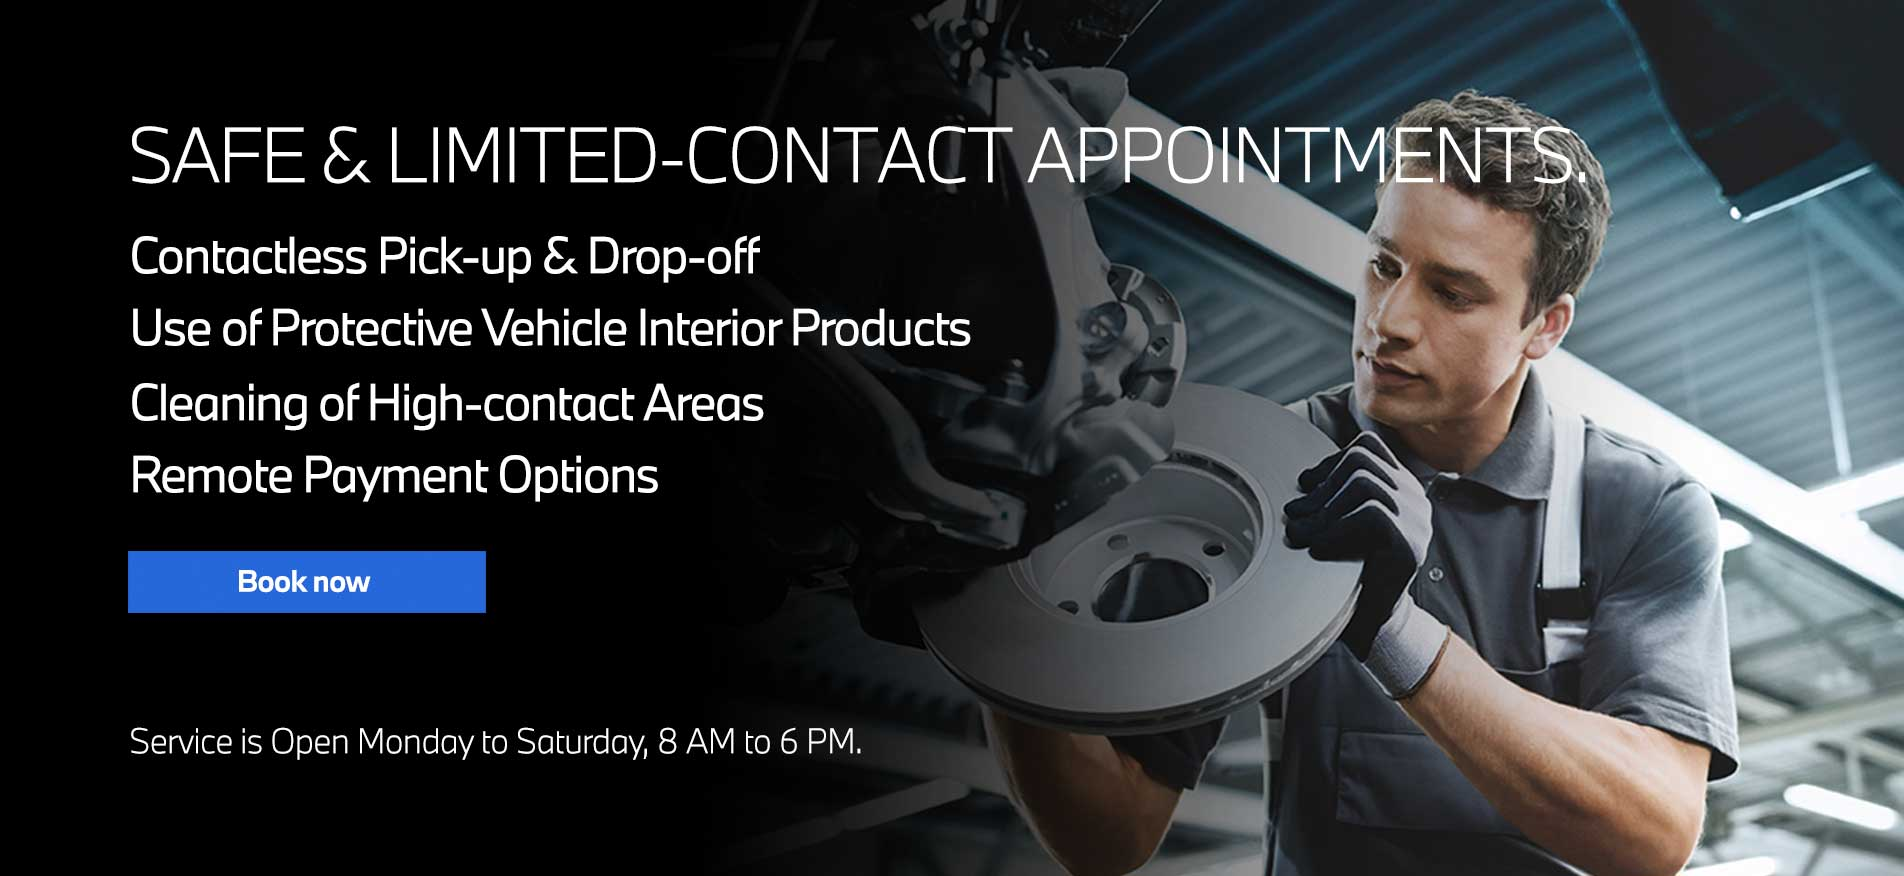 Auto West BMW Contactless Service